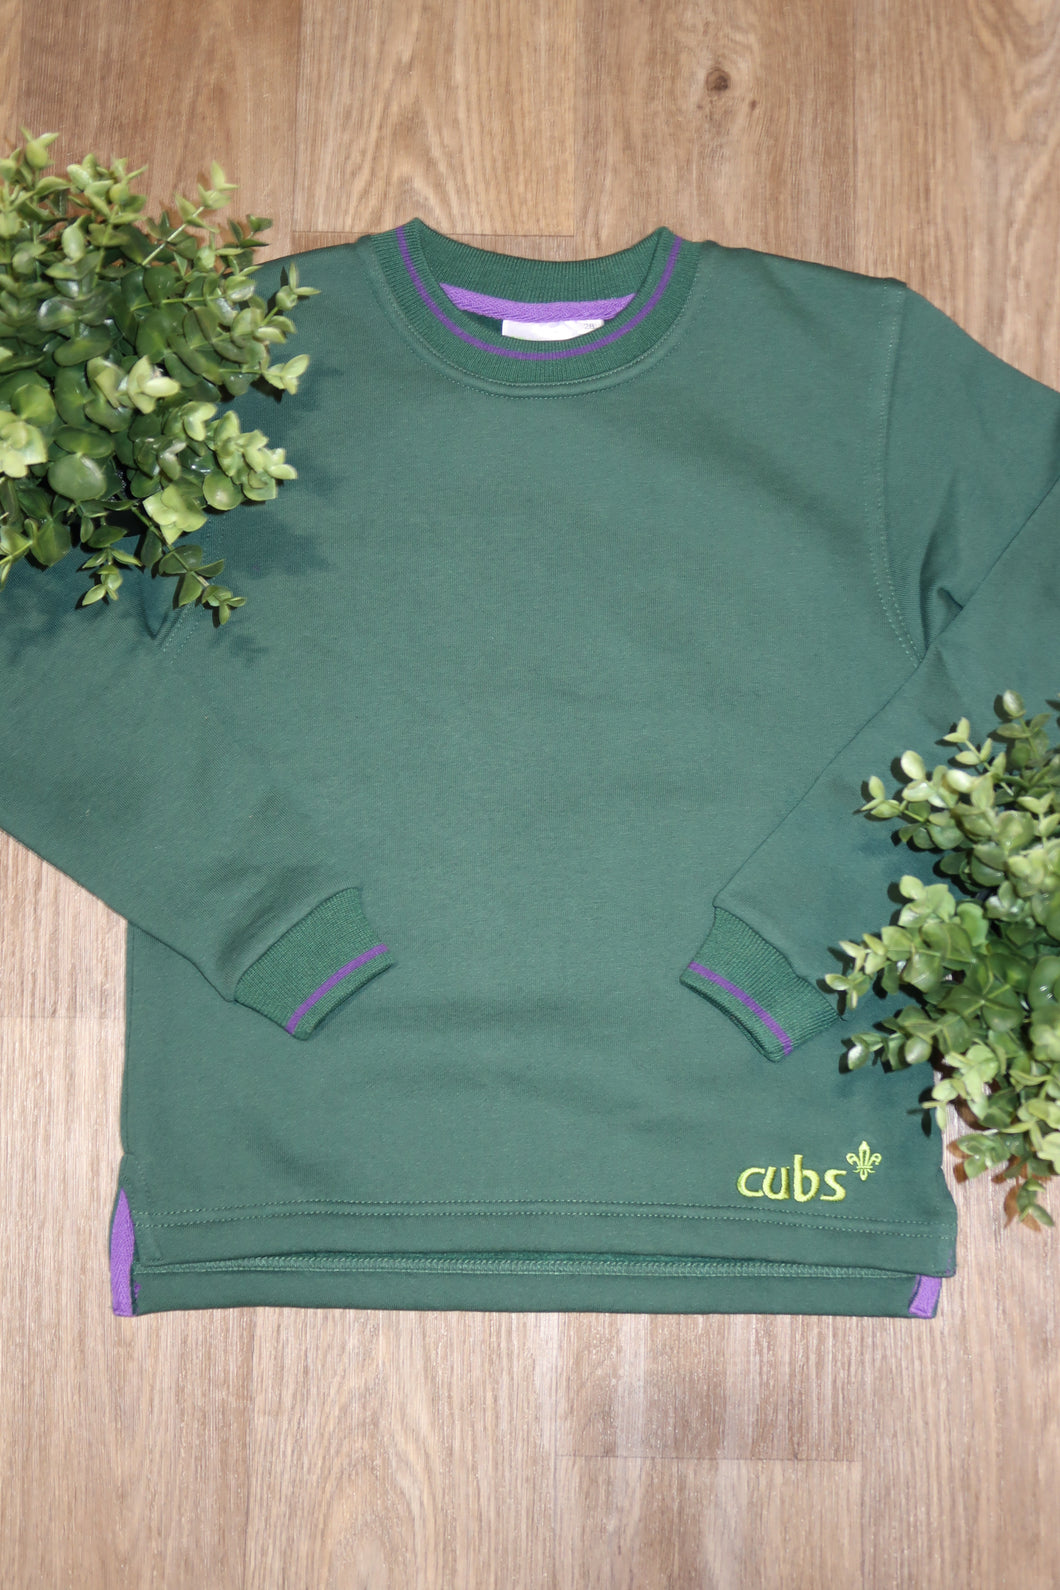 Cubs Sweatshirt